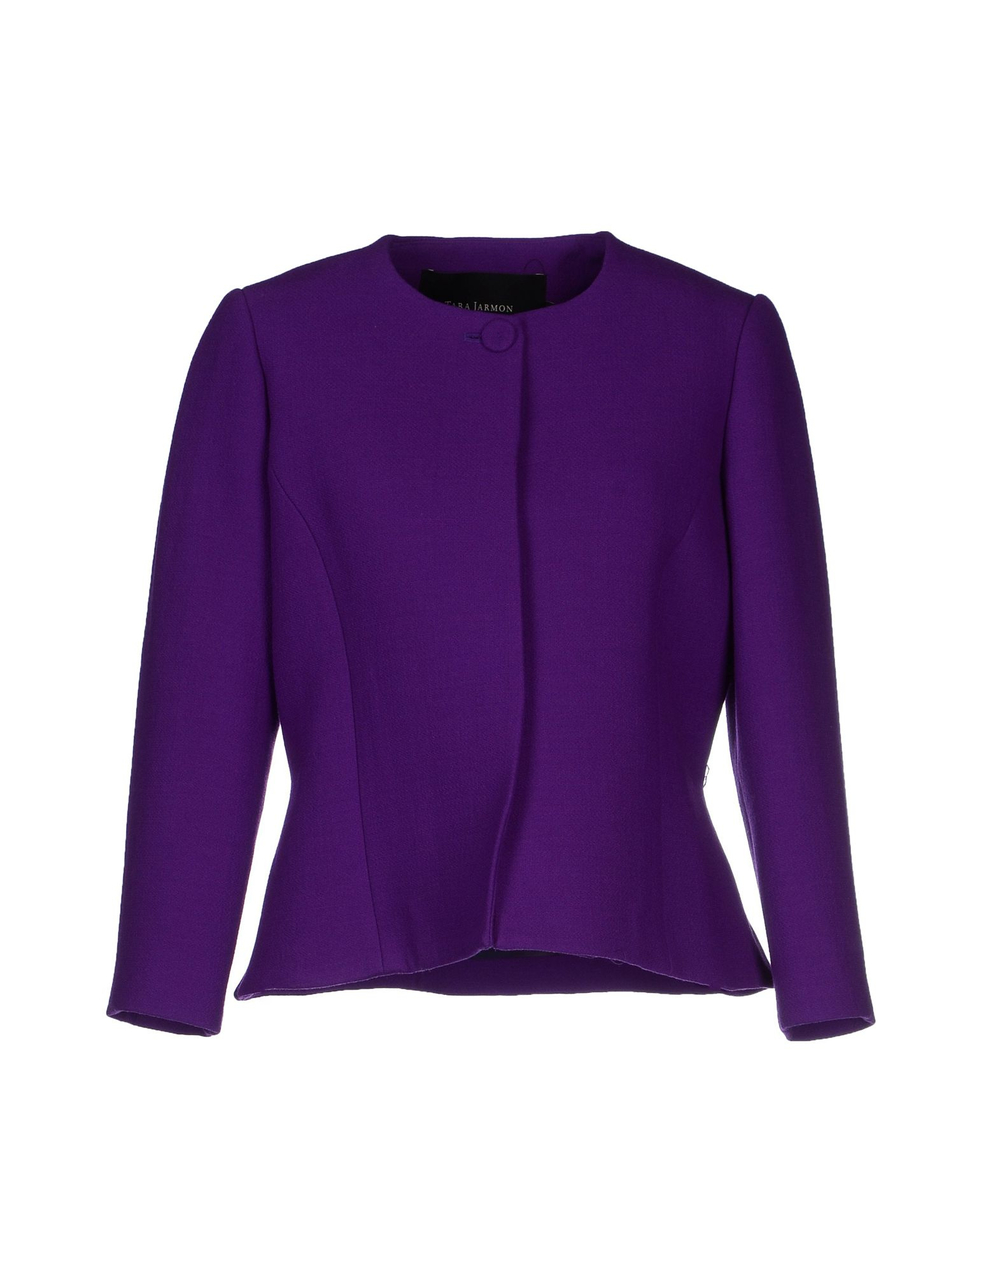 tara-jarmon-purple-blazer-product-2-684374281-normal.jpeg